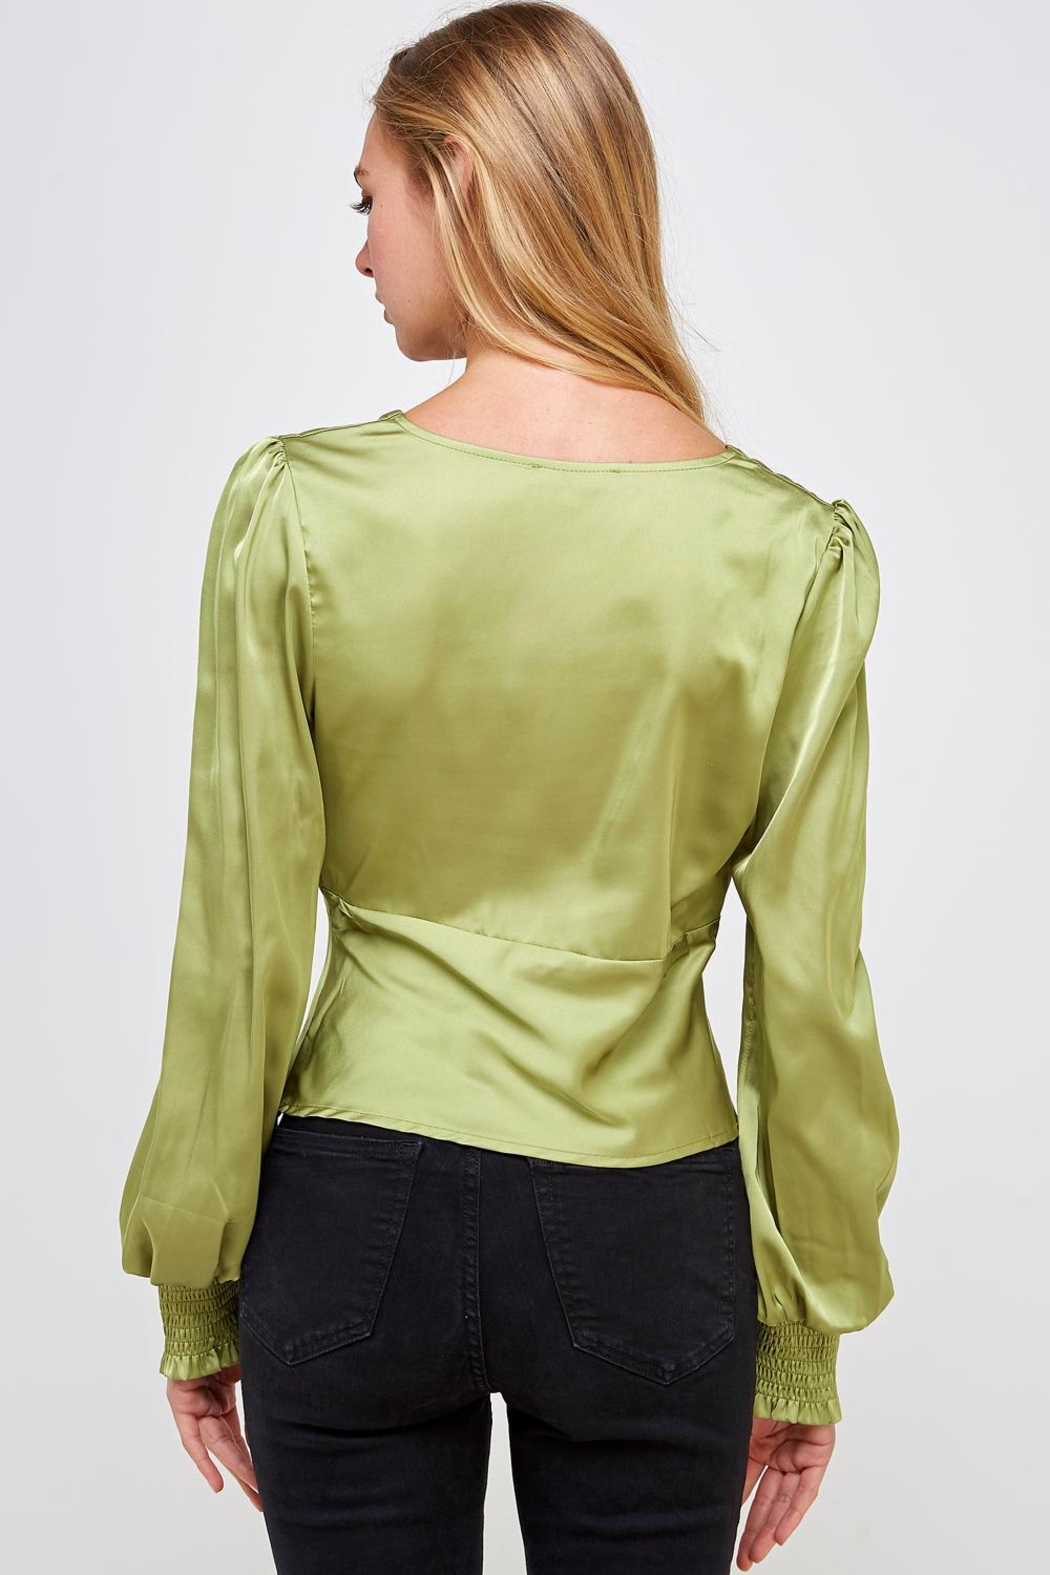 Emory Park Green Satin Blouse - Back Cropped Image